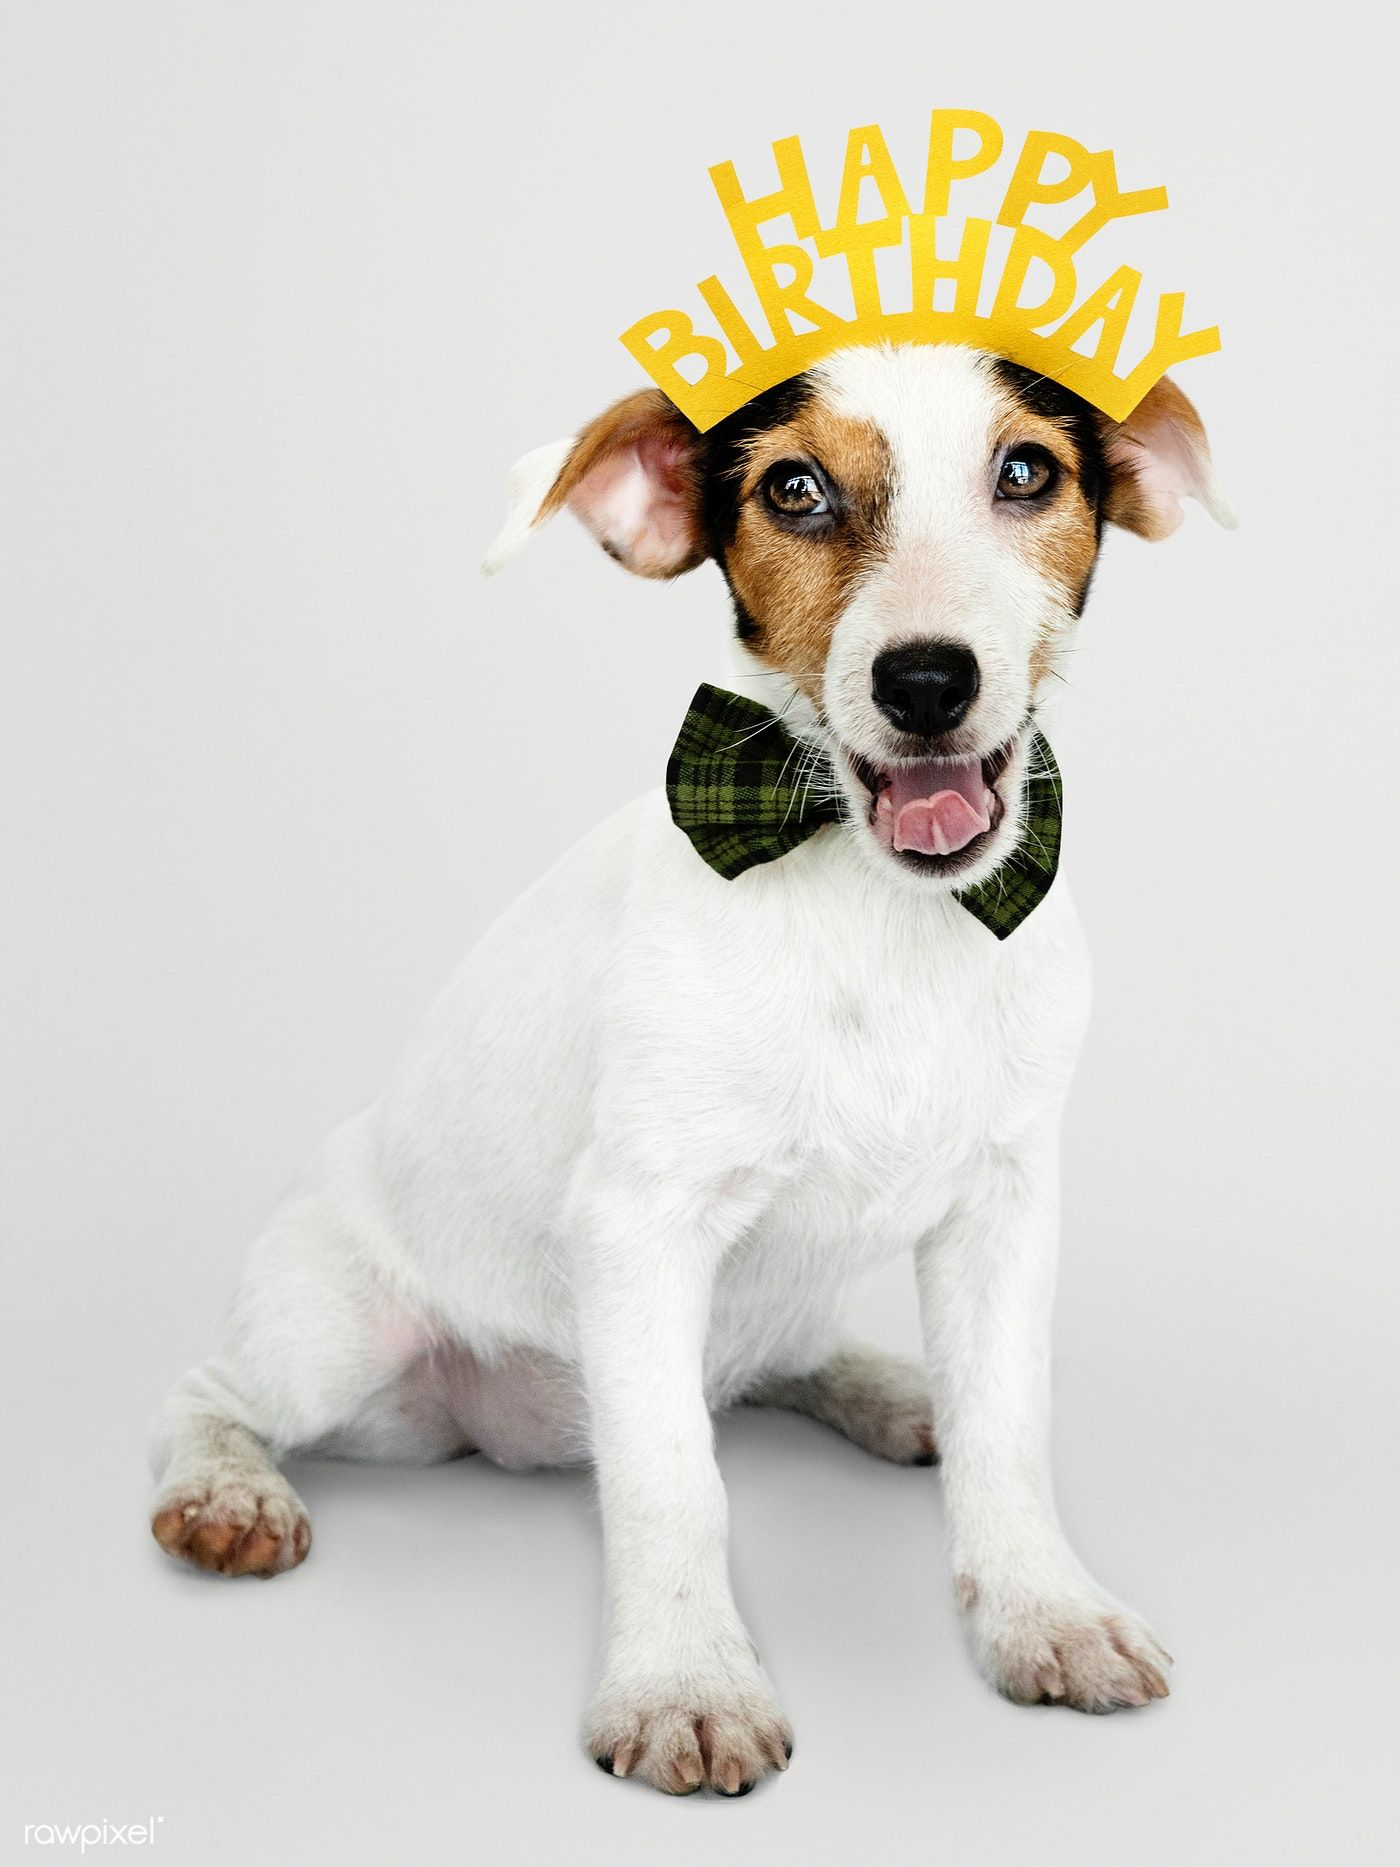 Download Premium Psd Of Adorable Jack Russell Retriever Puppy Wearing A Happy Birthday Puppy Happy Birthday Art Happy Birthday Crown